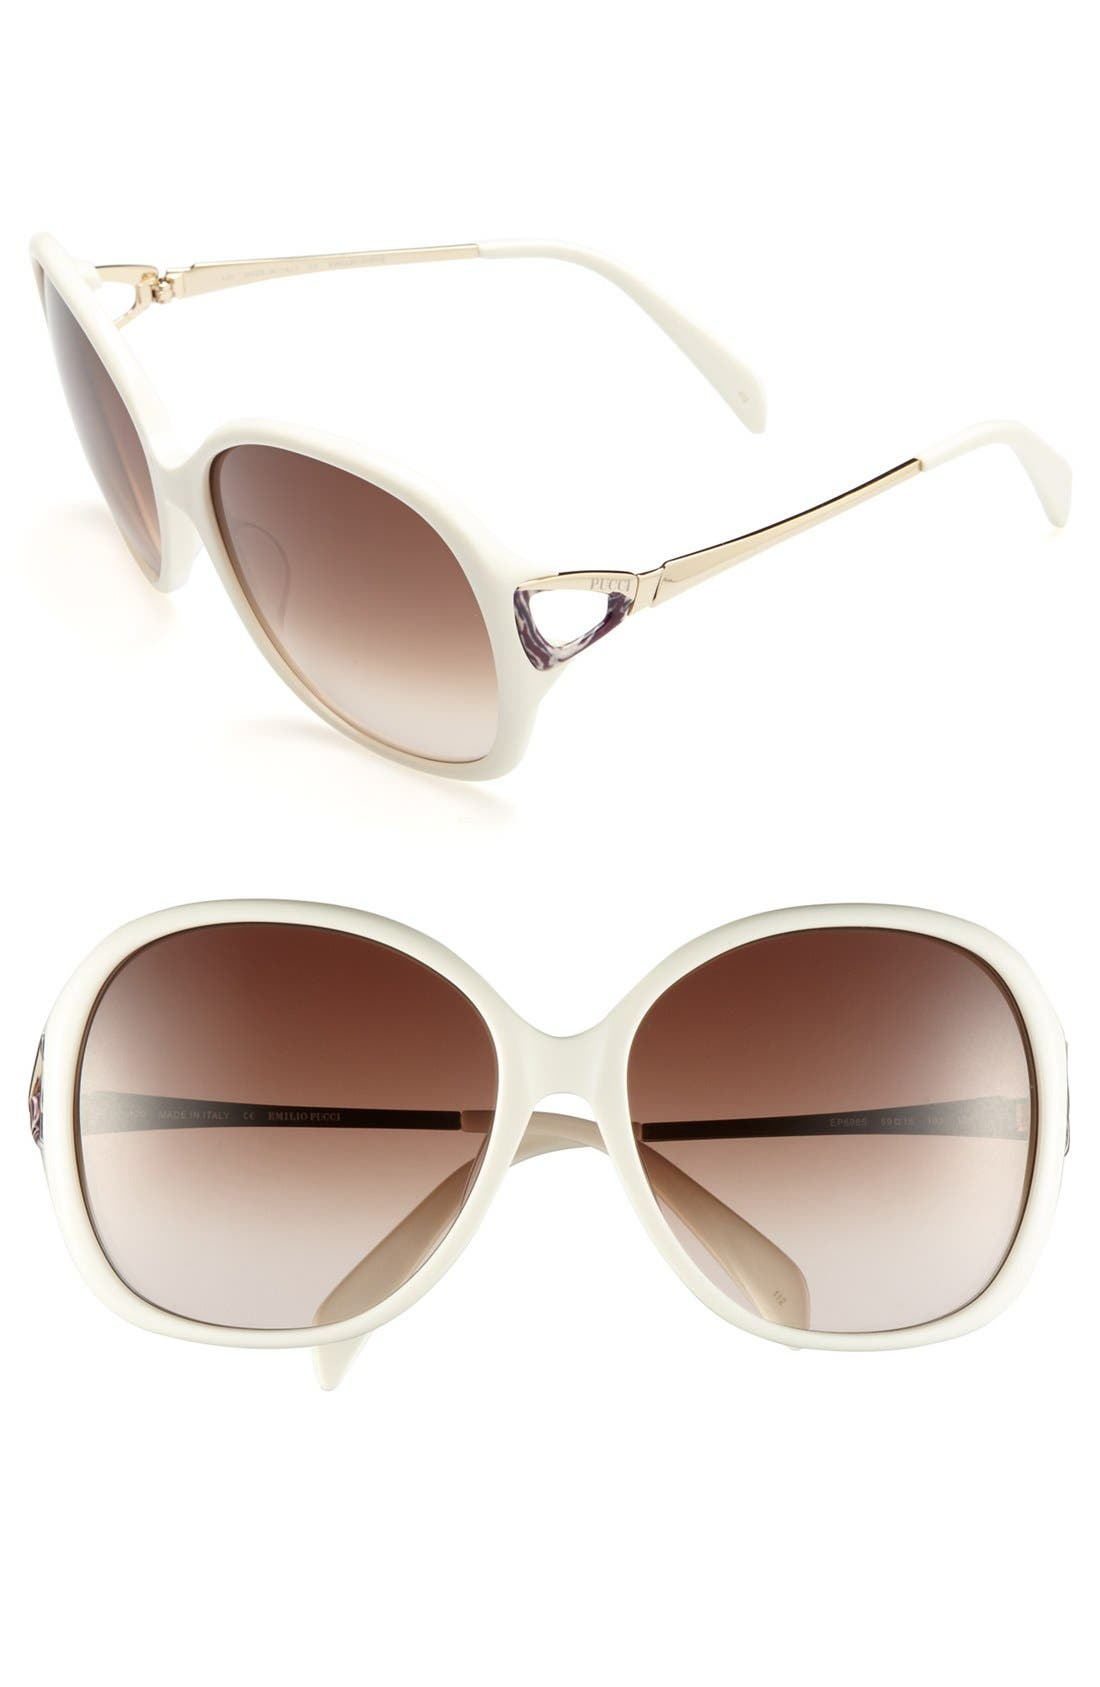 Alternate Image 1 Selected - Emilio Pucci 59mm Sunglasses (Special Purchase)